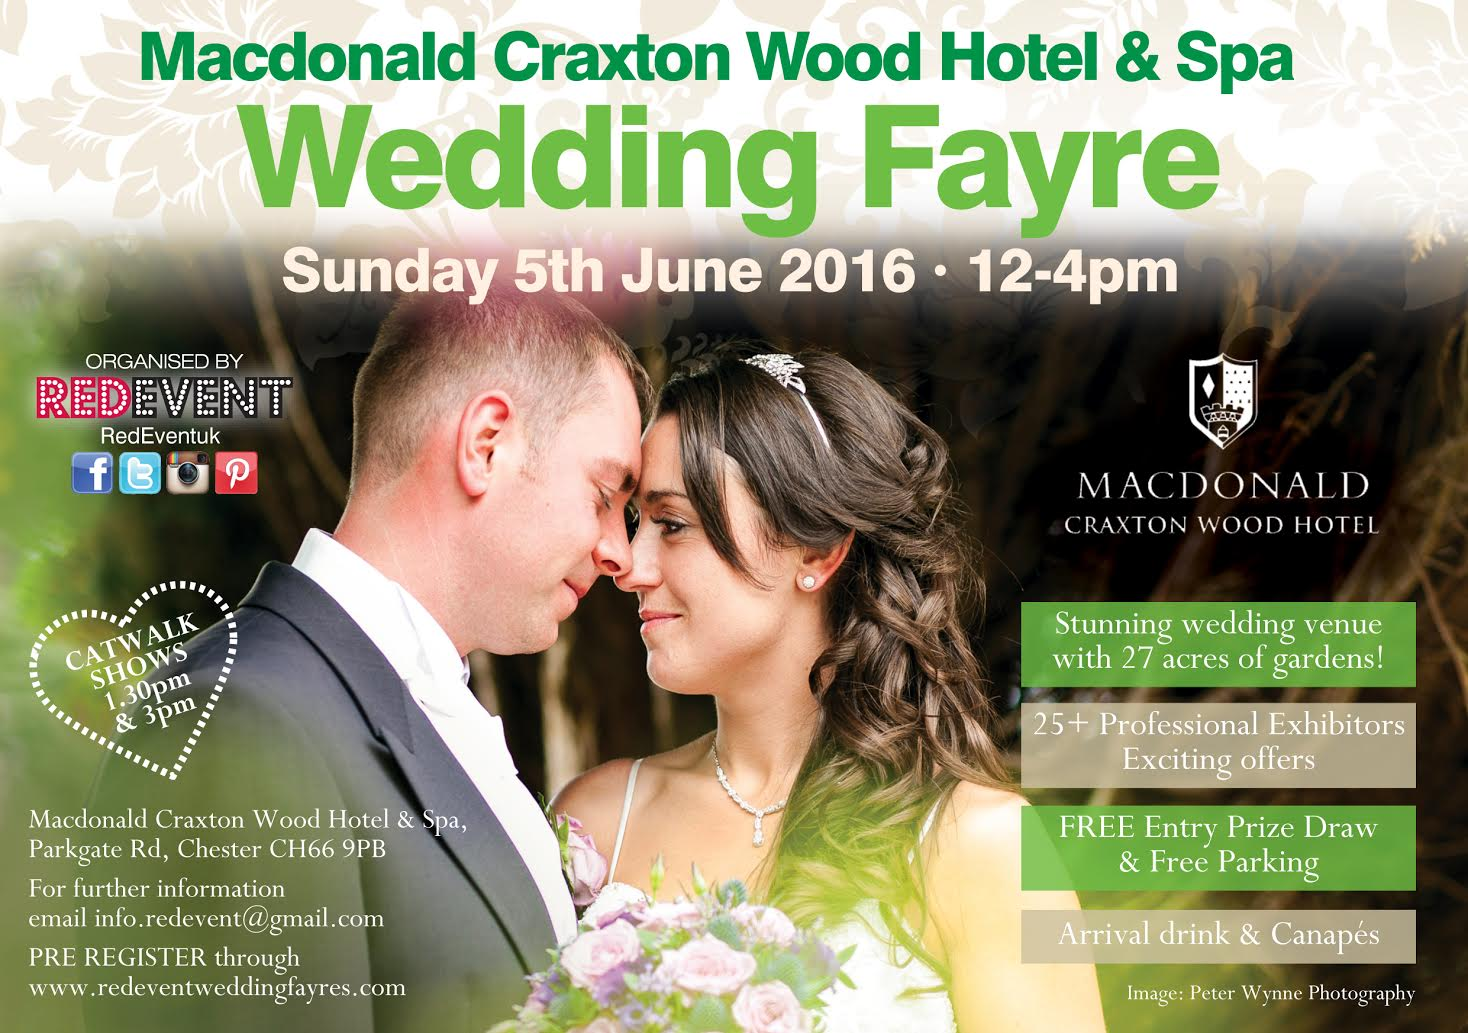 Macdonal_Craxton_Wood_Flyer_June2016_Red_Event